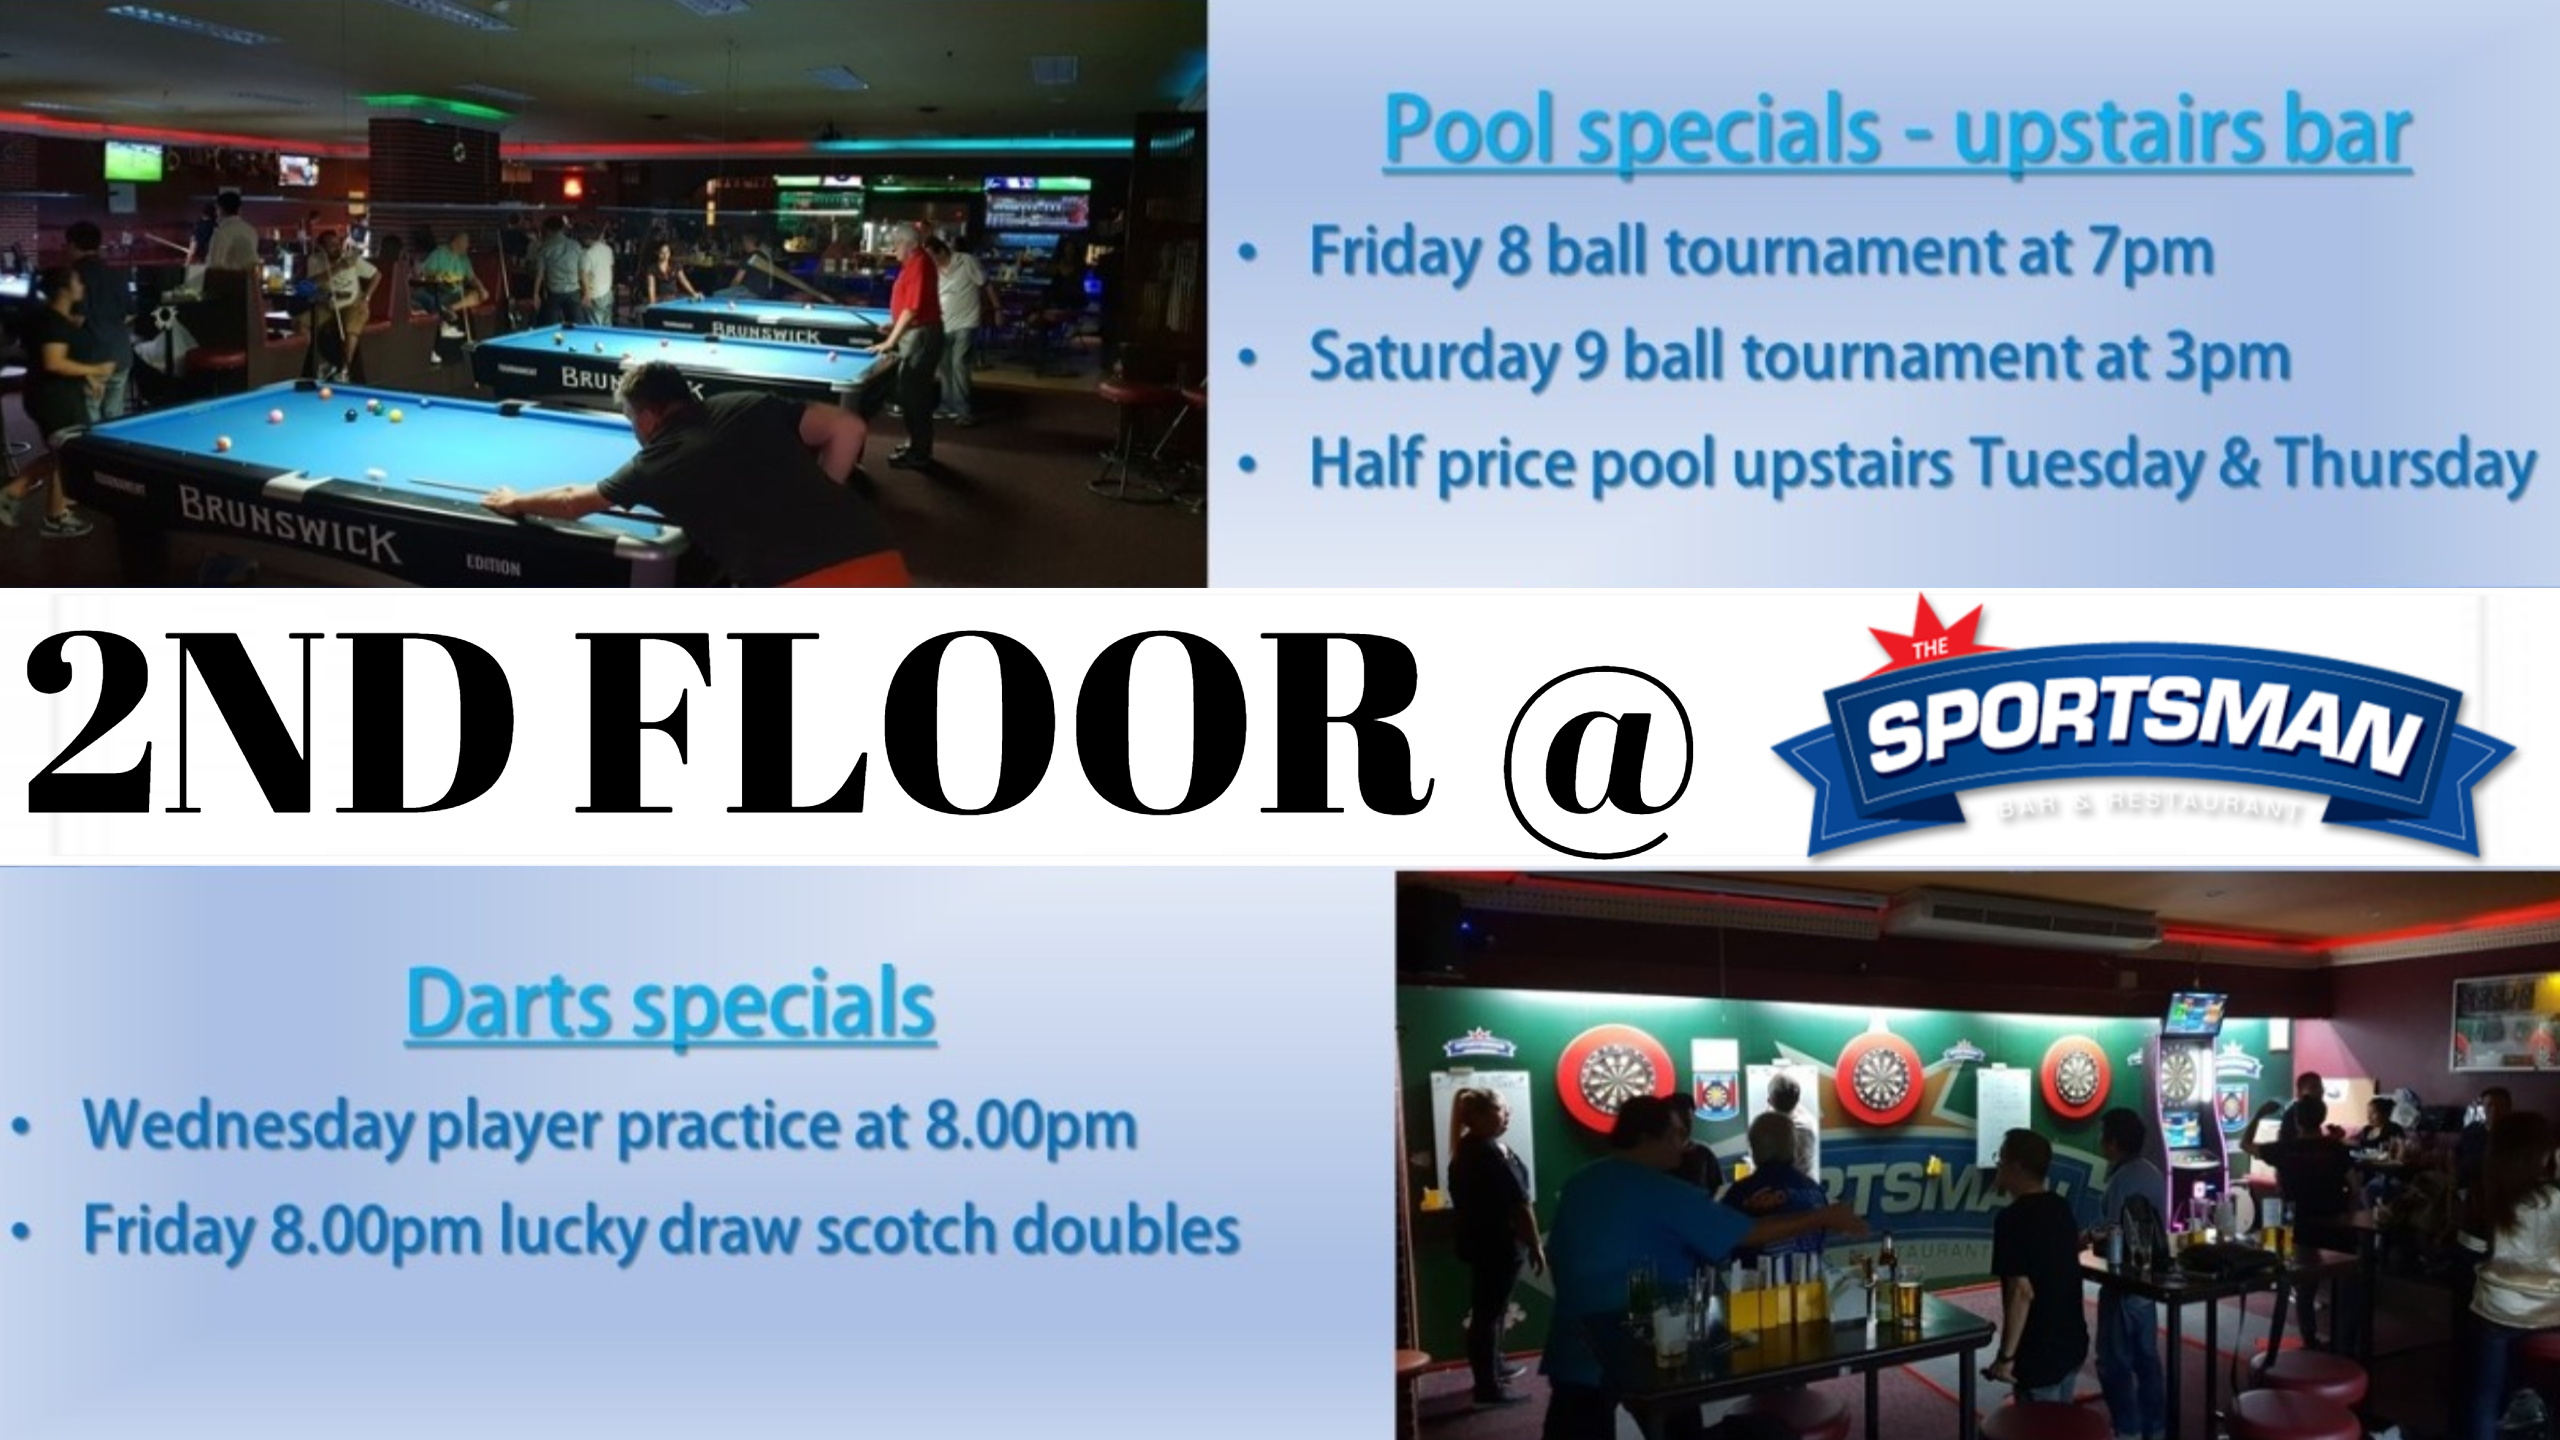 Pool   The Sportsman Bar and Restaurant